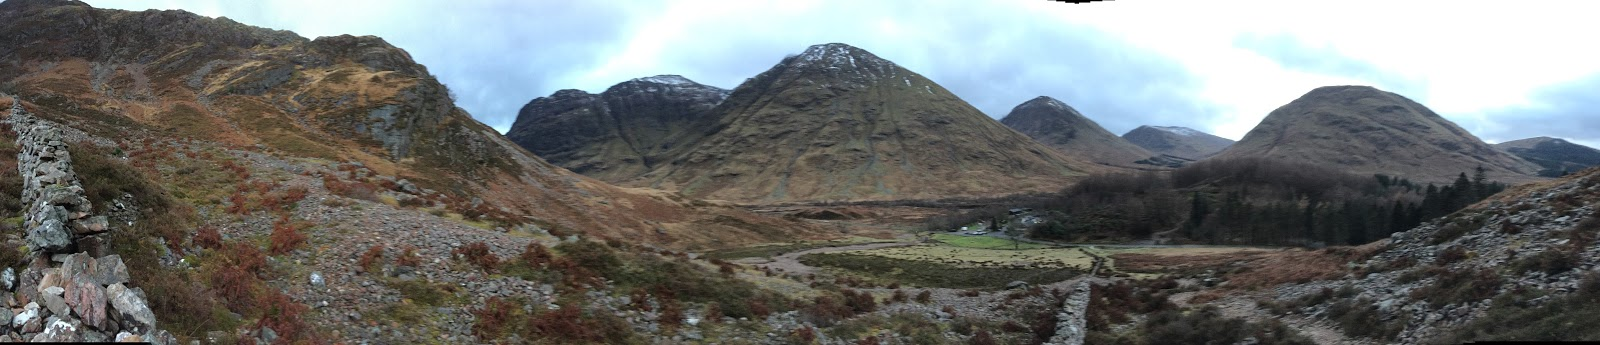 Glencoe Scotland Top of Harry Potter Hill Three Sisters